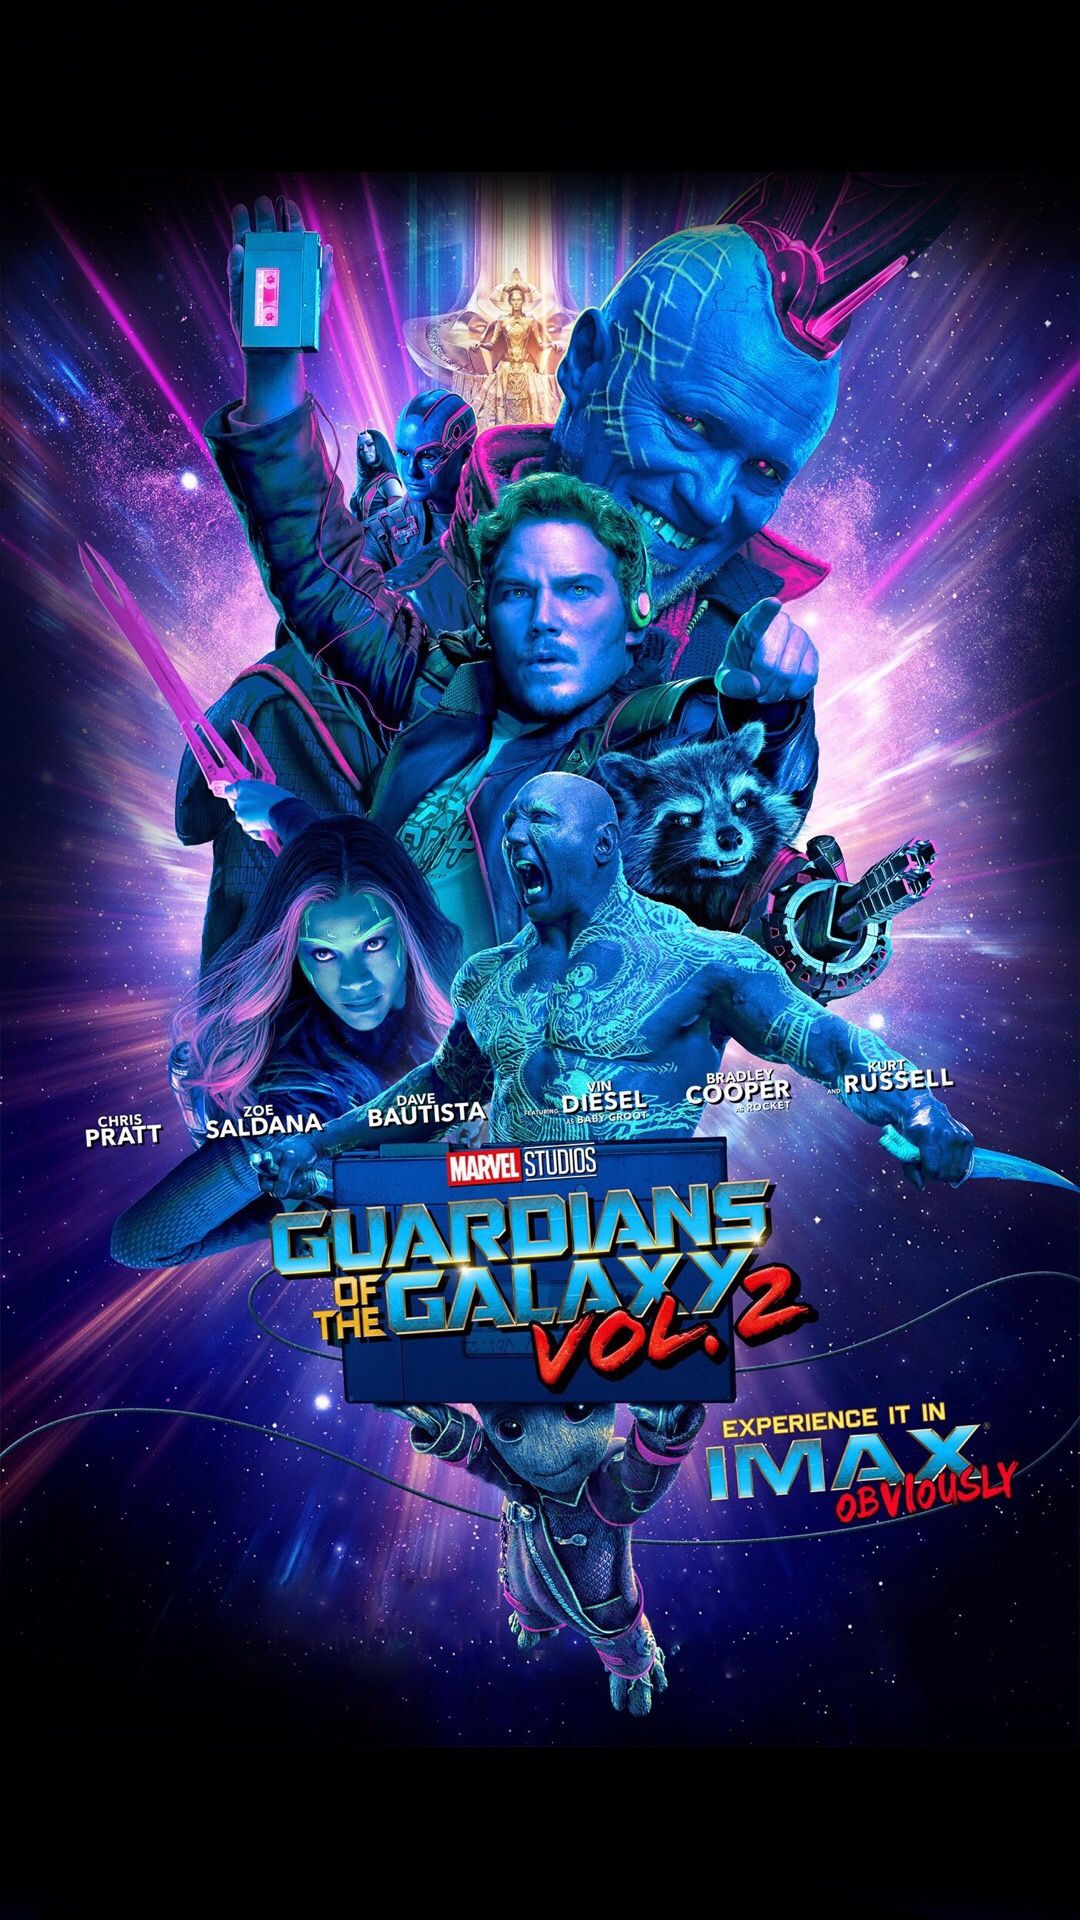 Guardians Of The Galaxy Wallpaper Vol 2 Iphone 6 Jpg 1080 1920 Guardians Of The Galaxy Vol 2 Guardians Of The Galaxy Marvel Movie Posters